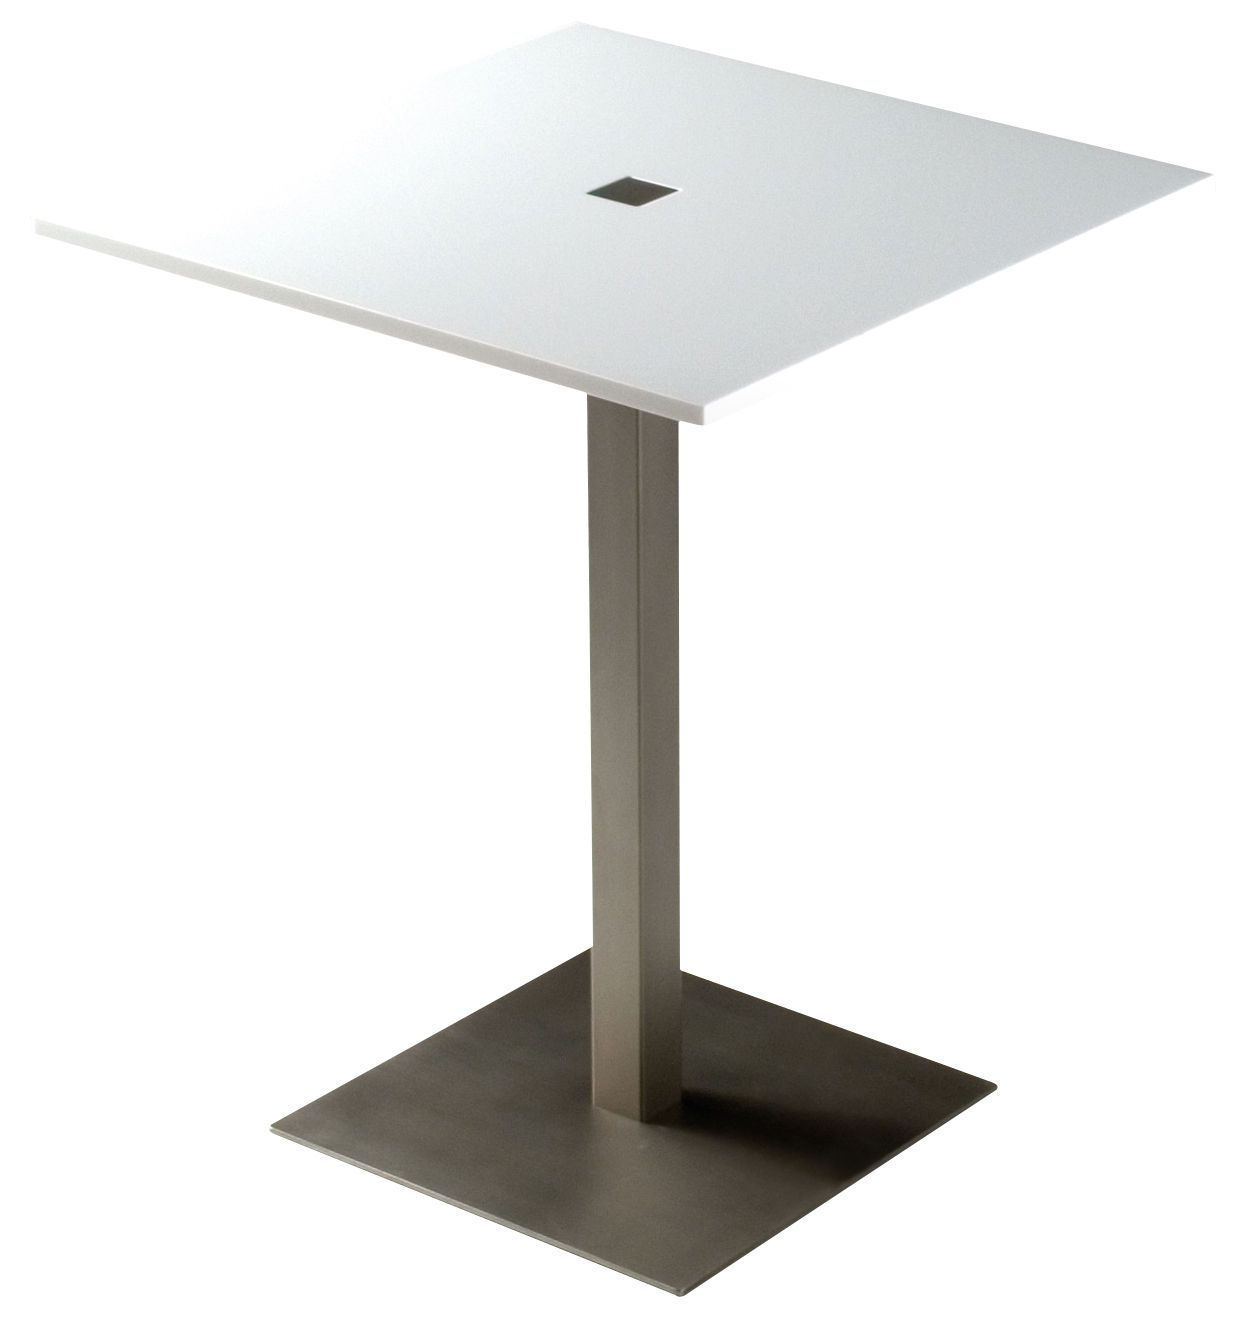 Slam table glossy white 60x60 cm by zeus for Table 60x60 design